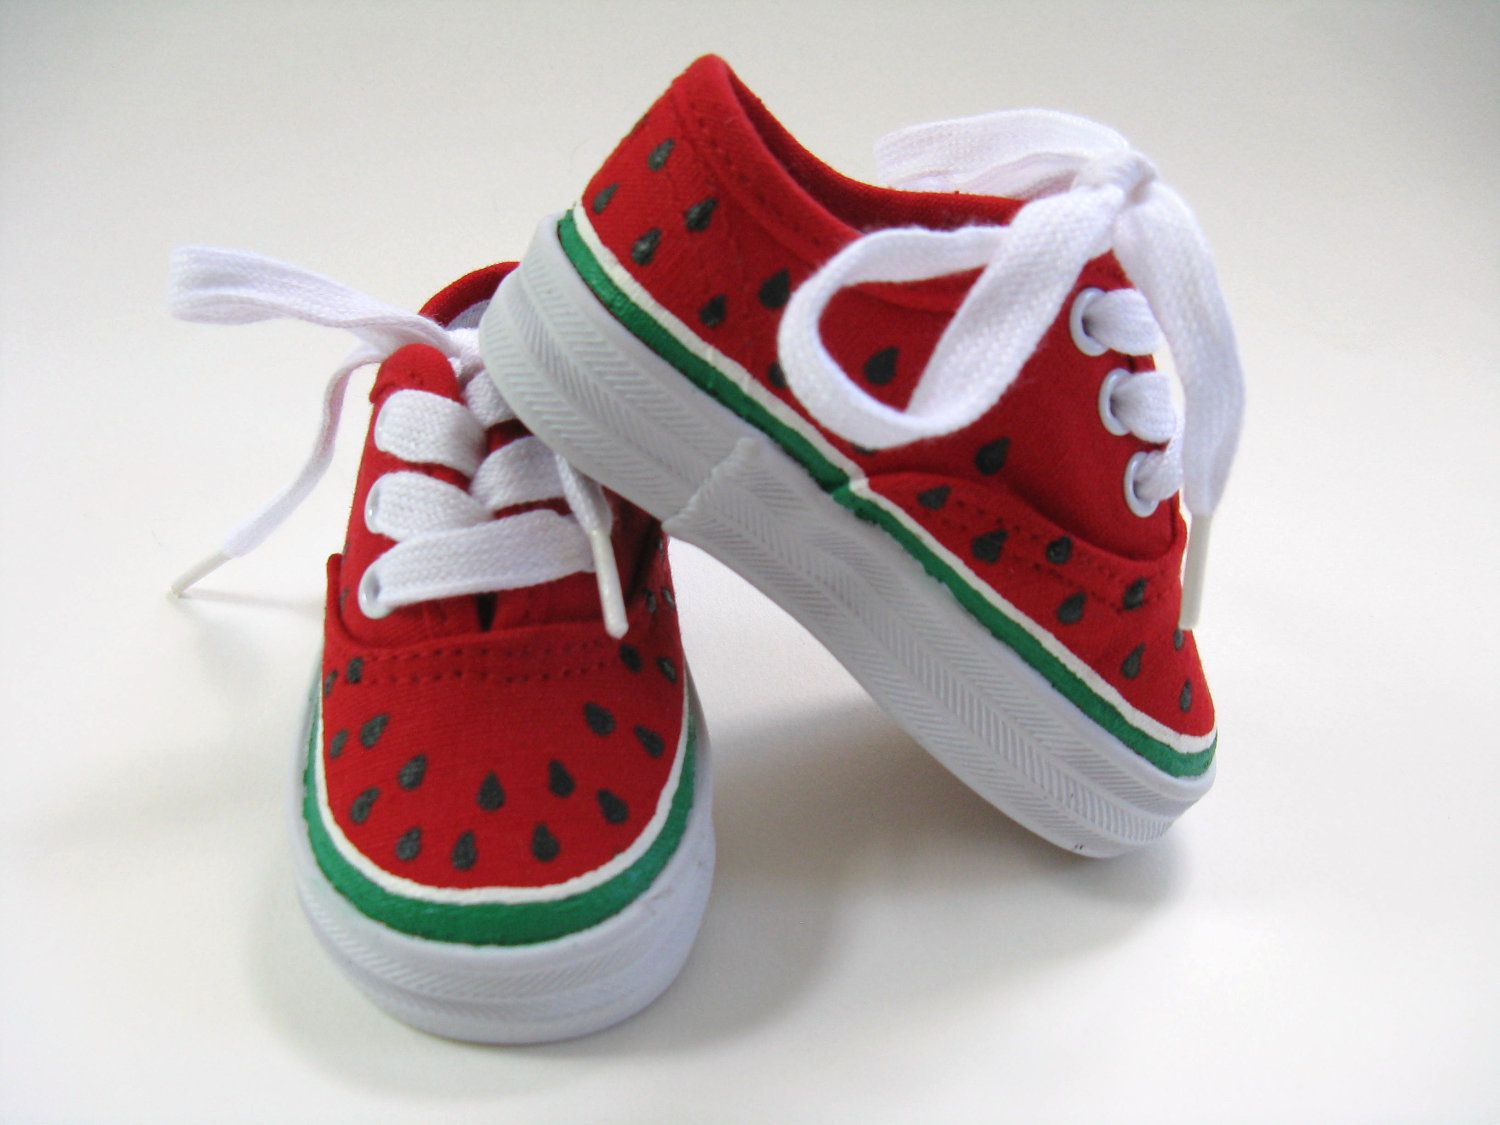 Girls Watermelon Shoes Hand Painted Toddler or Baby Canvas Kids Sneakers.  $25.00, via Etsy